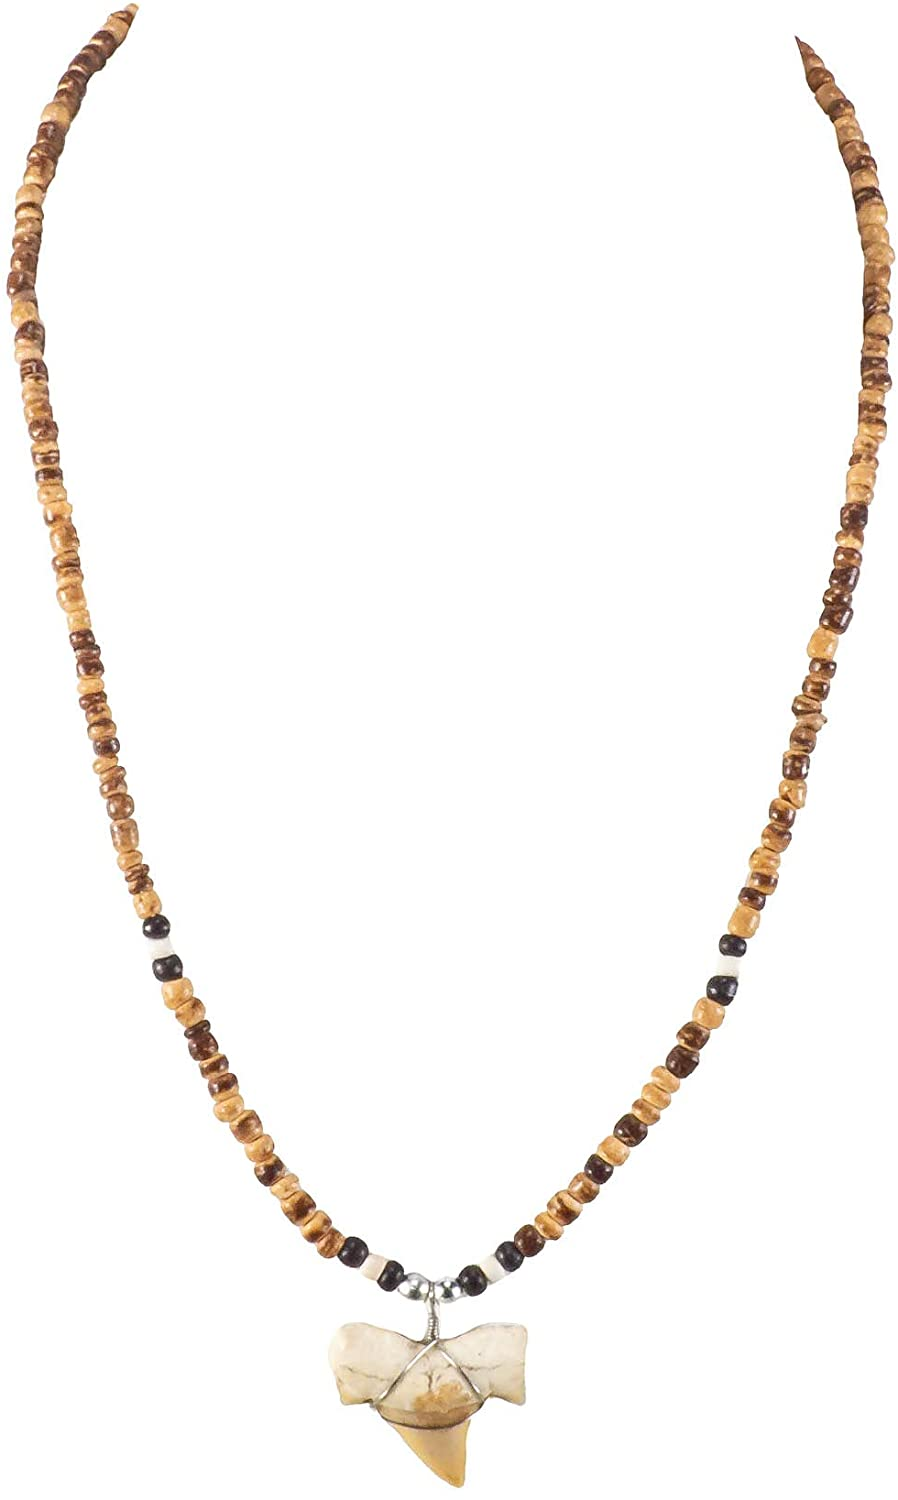 BlueRica Shark Tooth Pendant on Tiger Coconut Beads Necklace (1S)